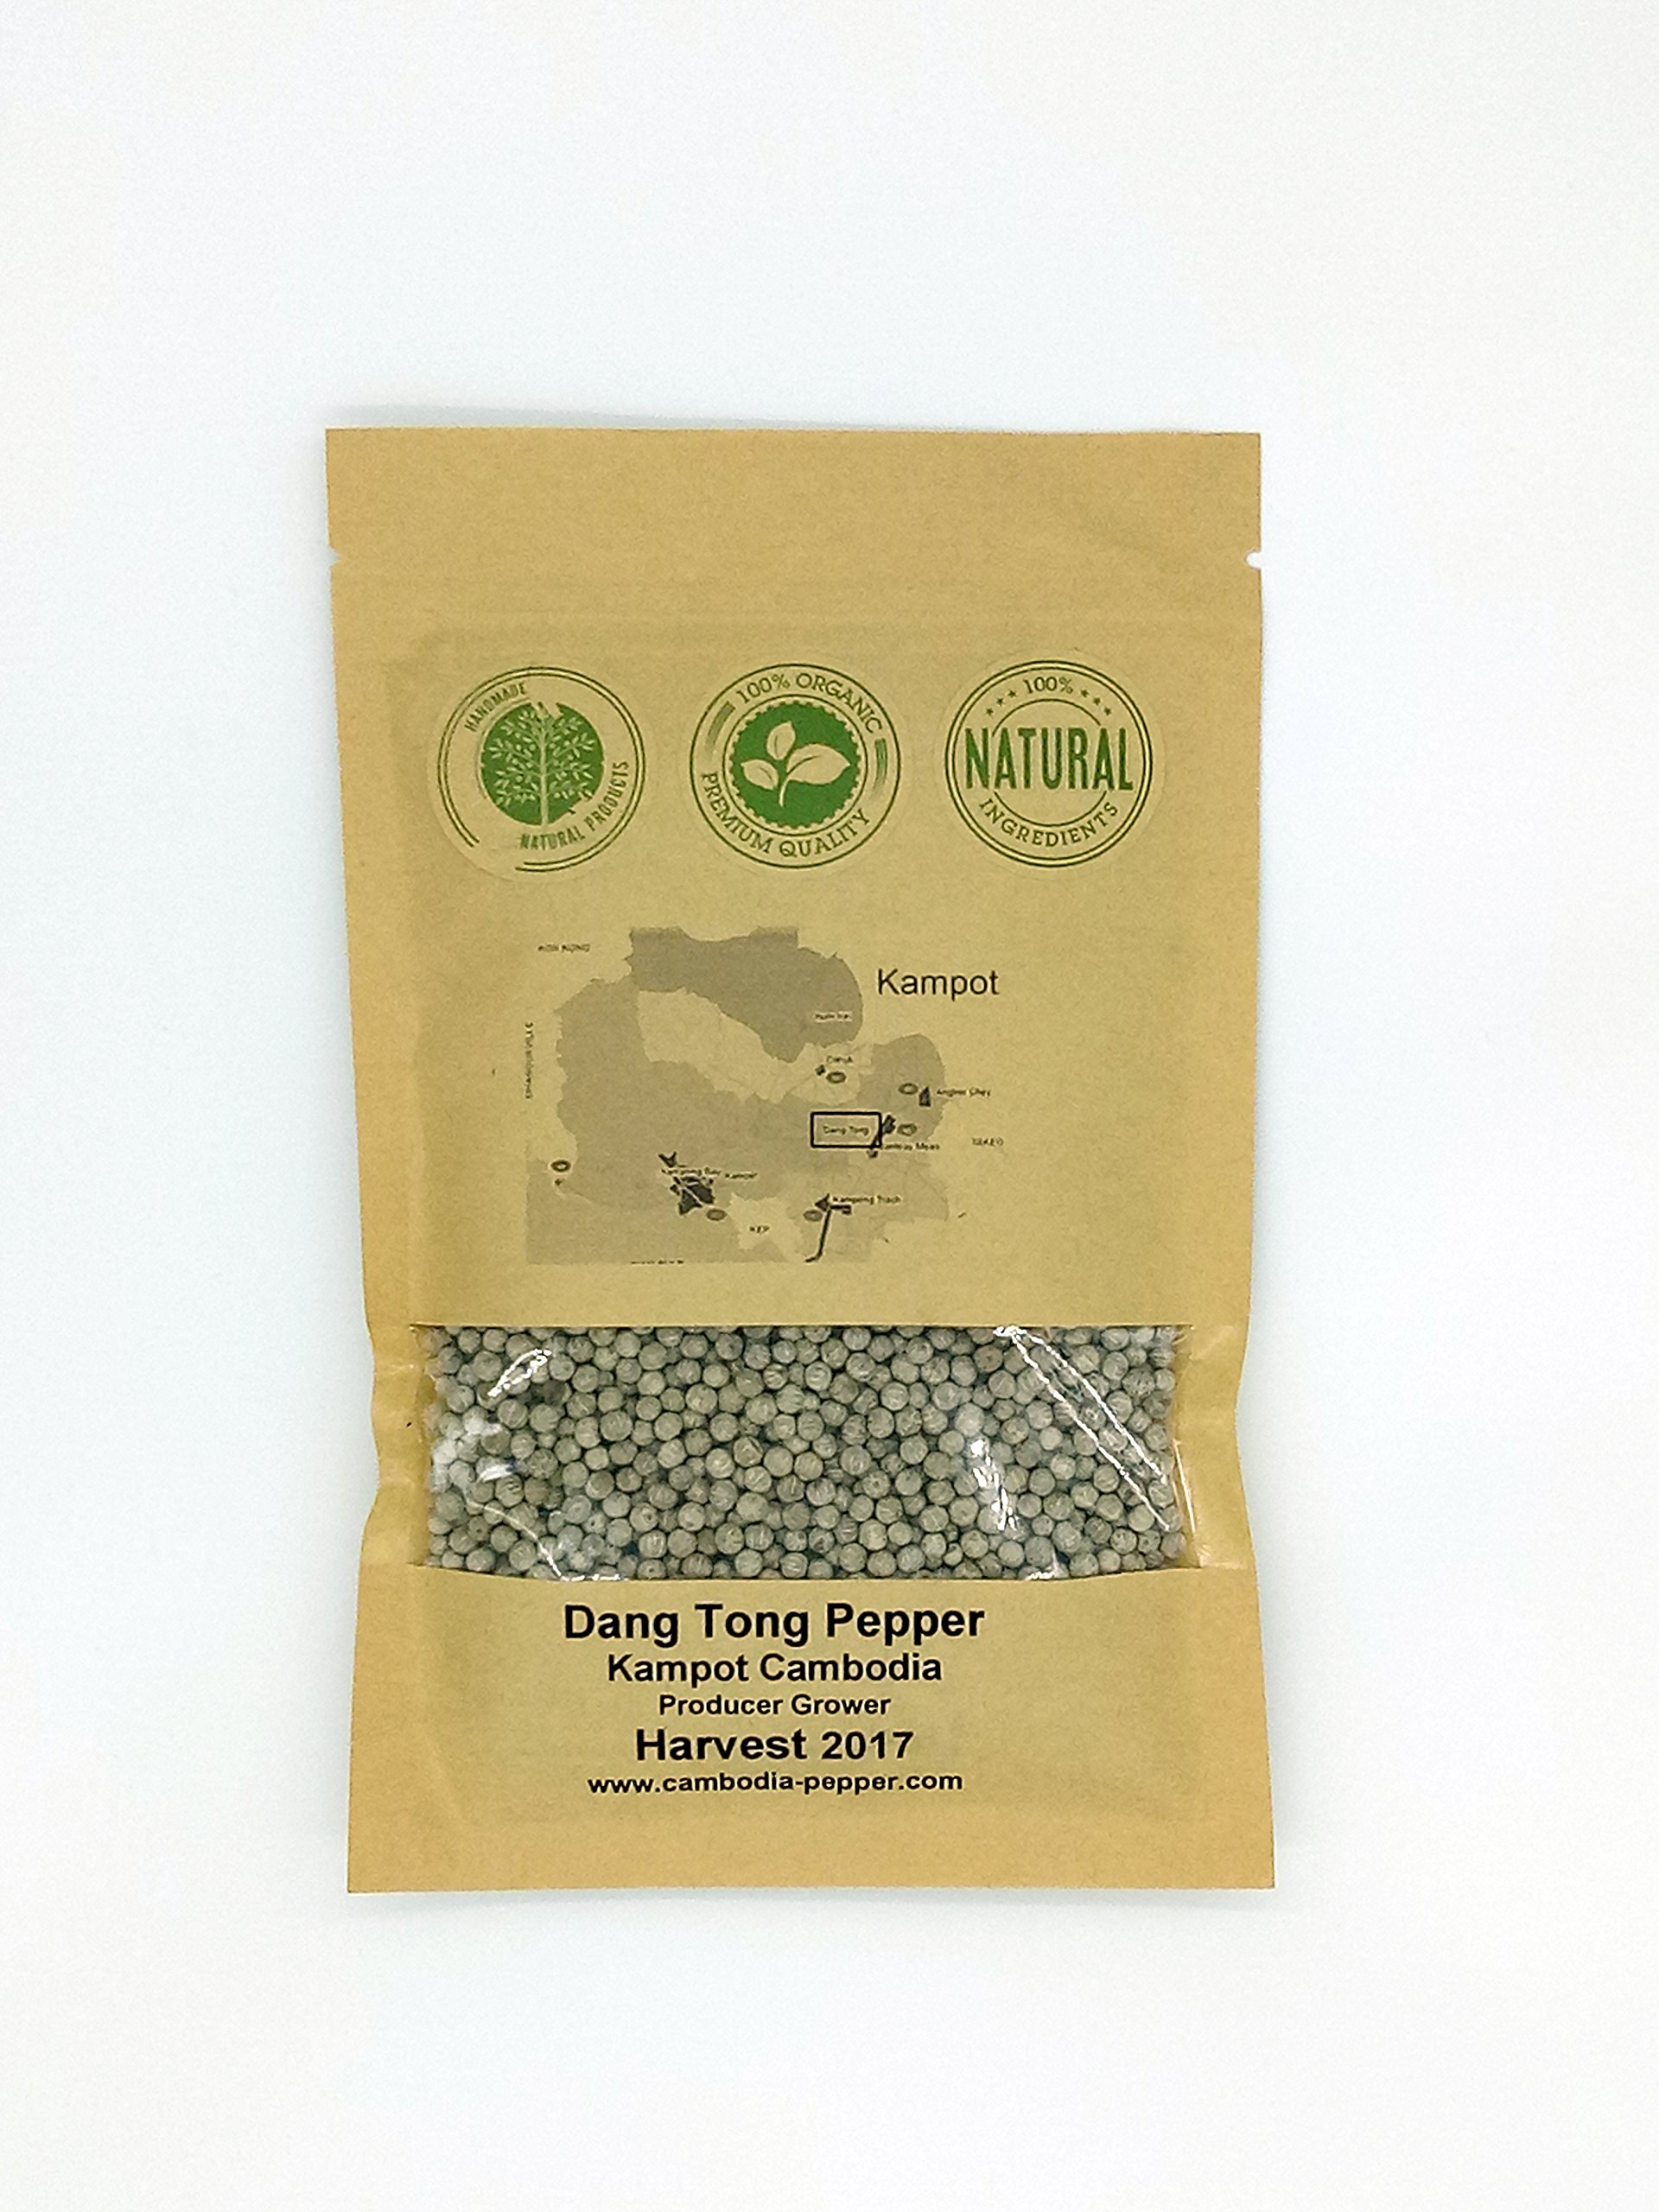 Harvest 2019 - Kampot Pepper Number : P2-035-002 - District of KAMPOT - New DANG TONG White Pepper Gourmet Pepper whole Peppercorns 200g / 7 onces - producer Grower harvest March 2019 - Cambodia